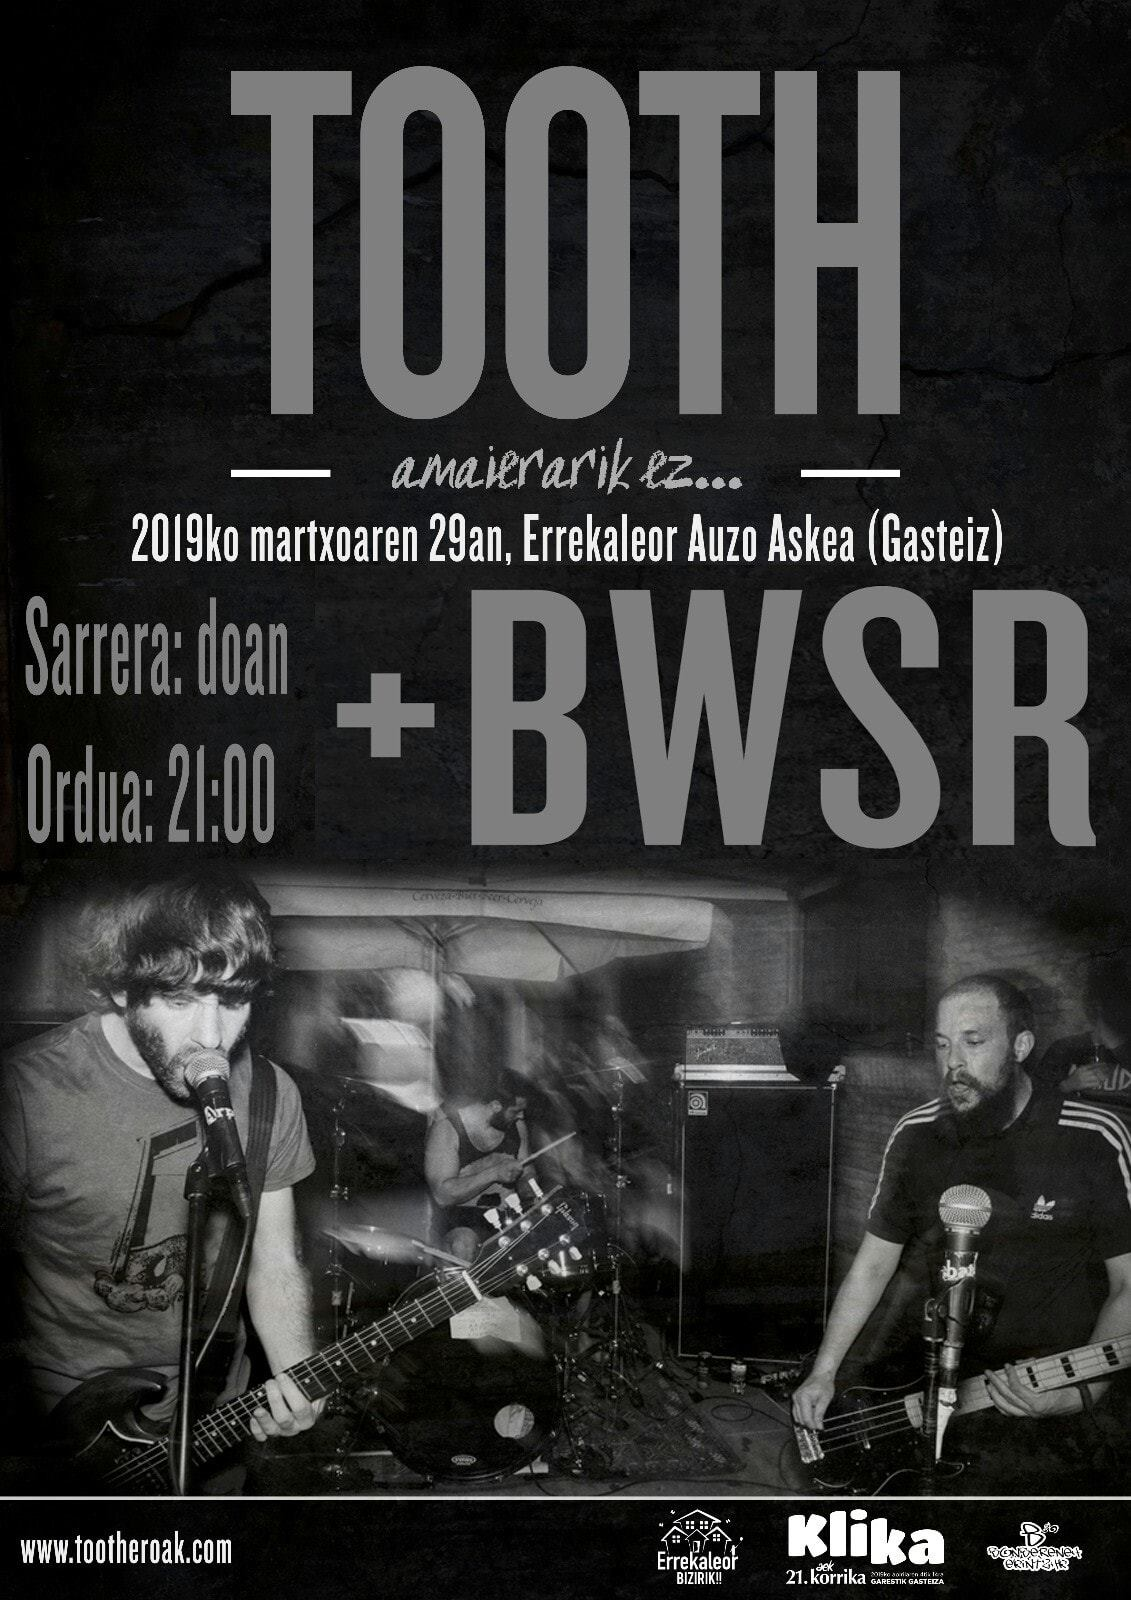 TOOTH BWSR